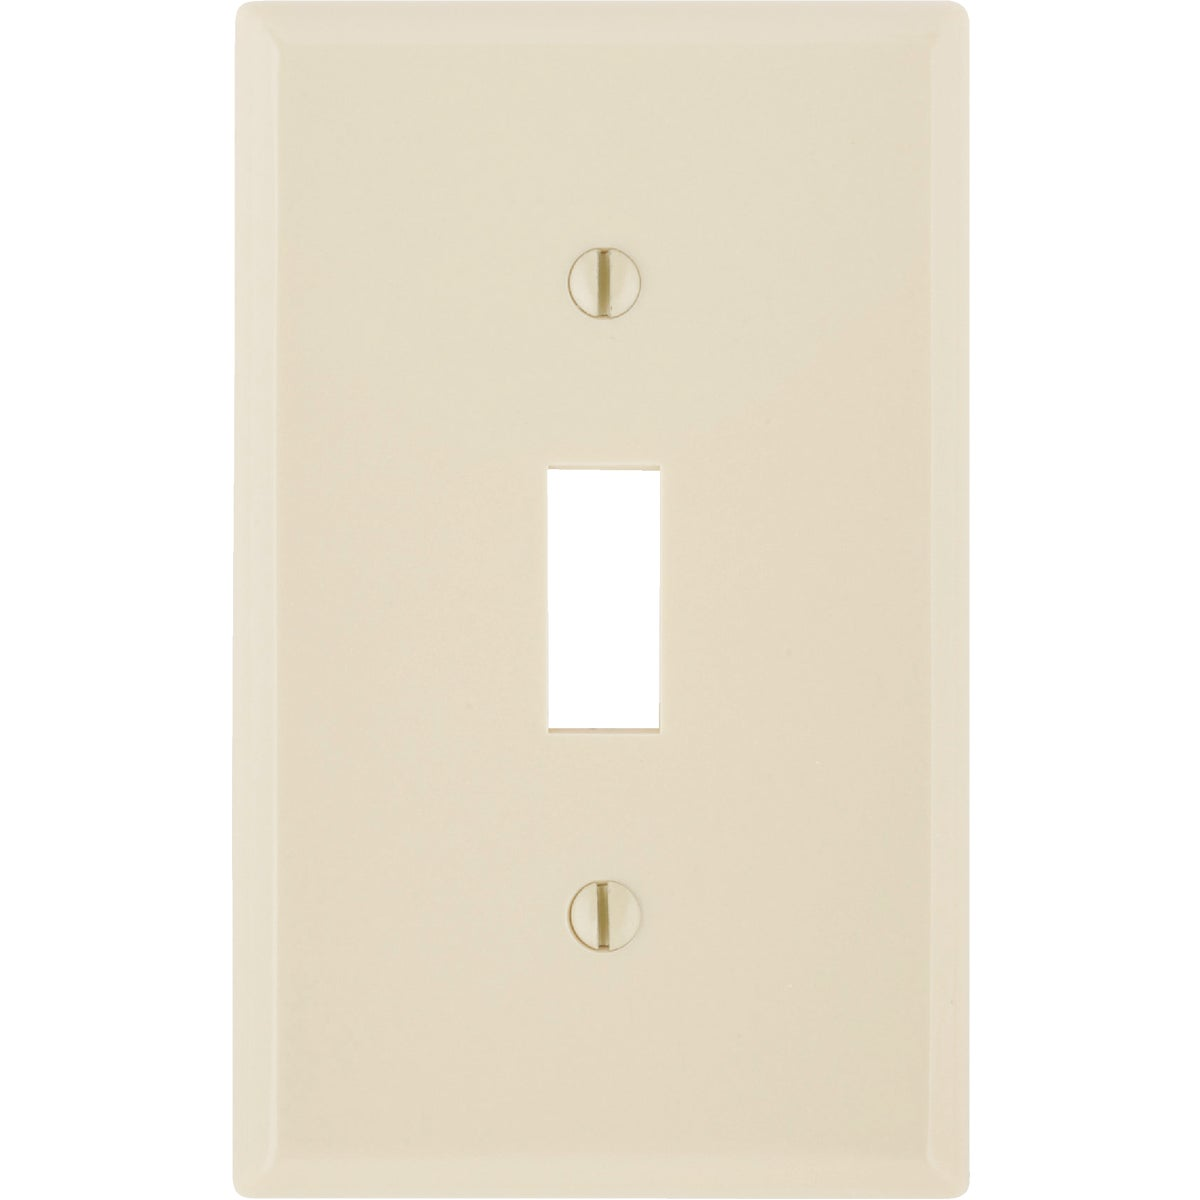 IV 1-TOGGLE WALL PLATE